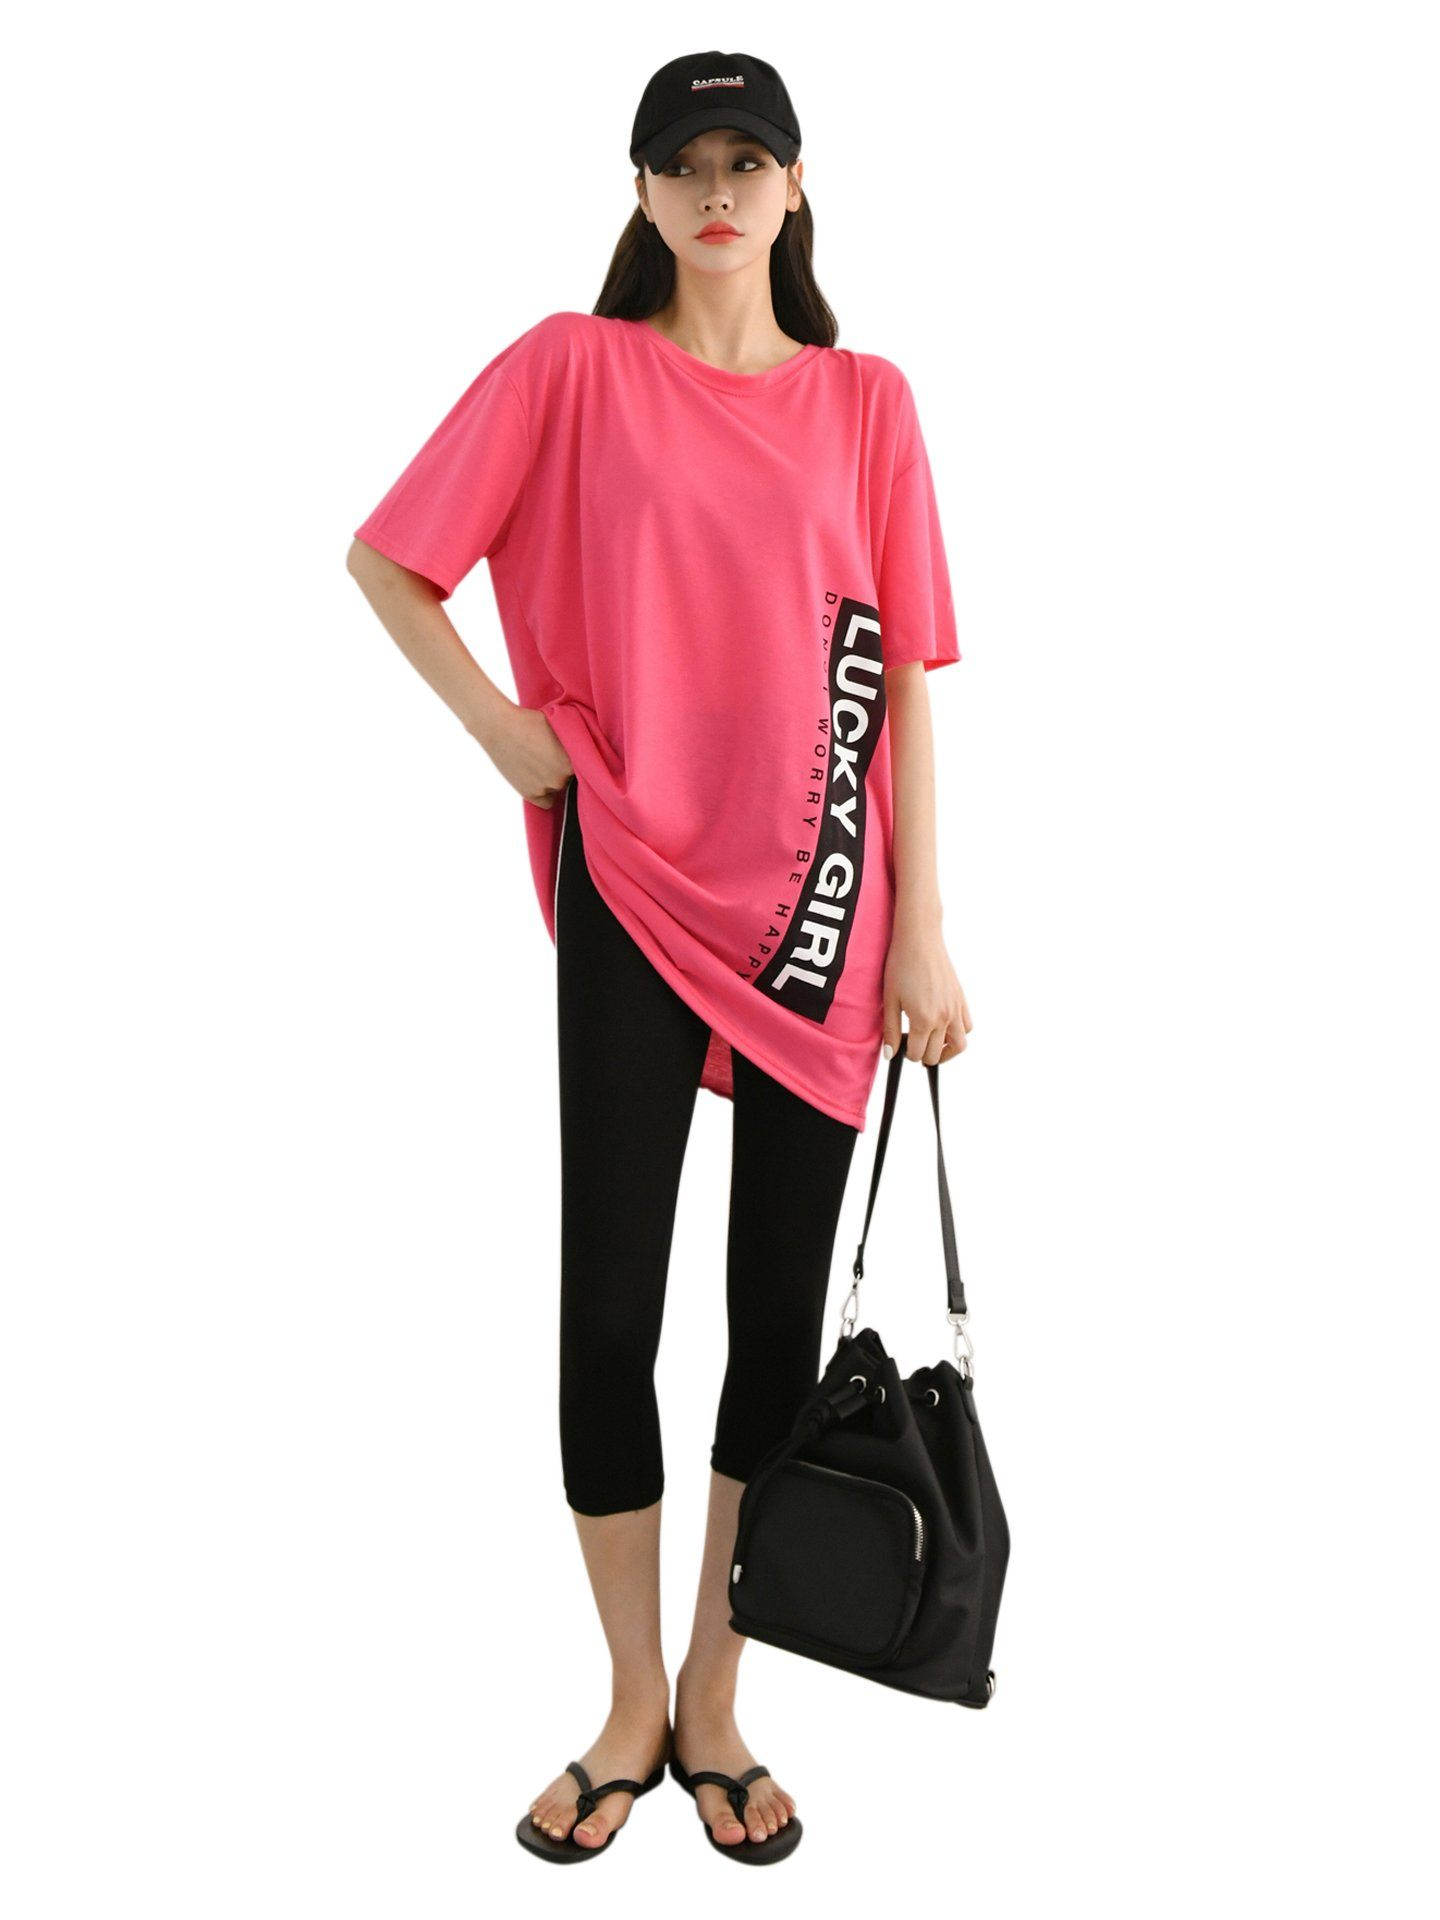 LUCKY GIRL T-shirt Manches Courtes & Leggings T-shirt & Legging BELLE D'ORIENT